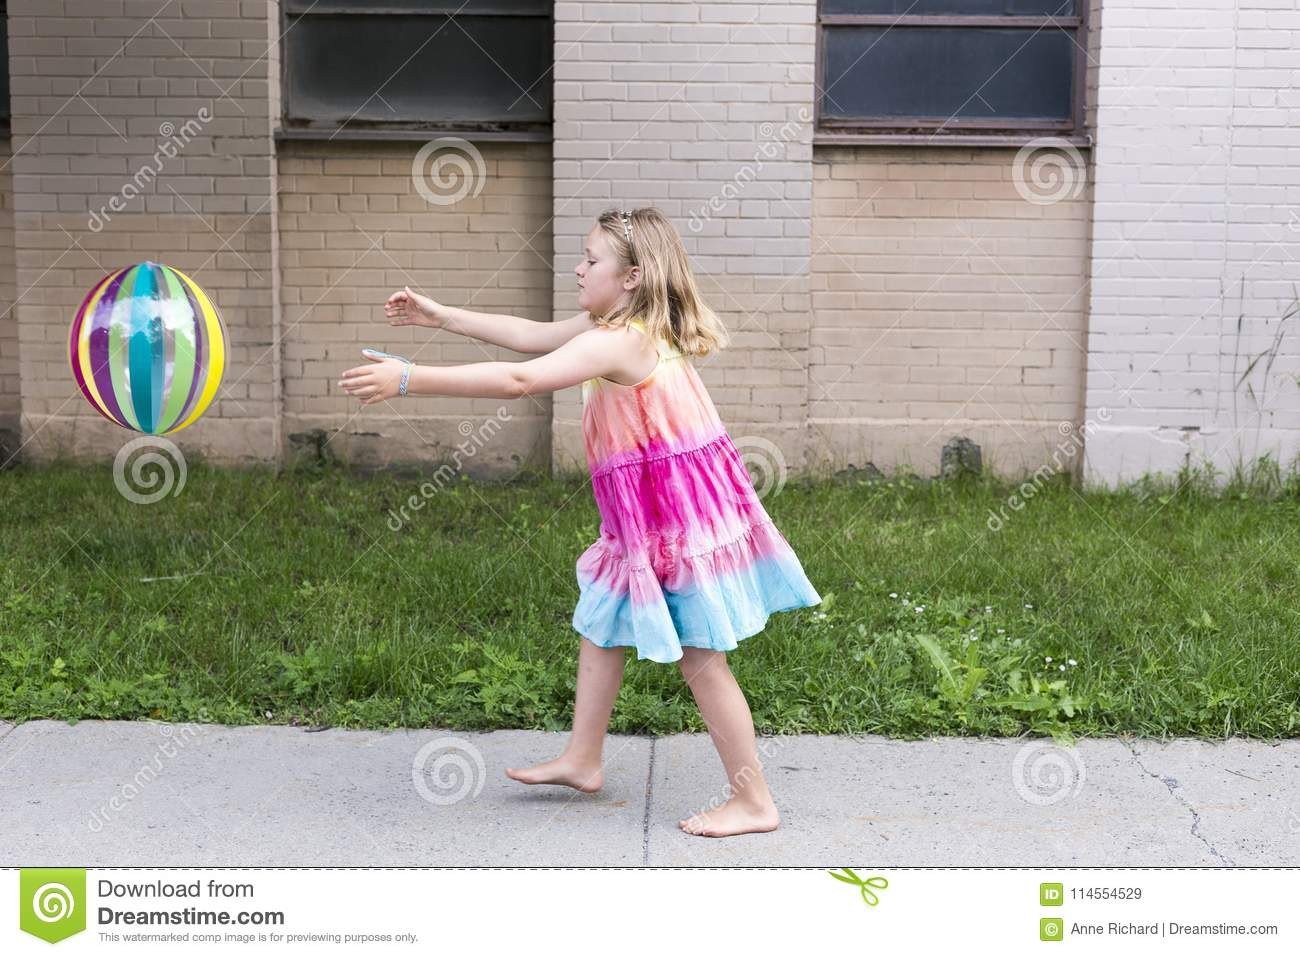 2de0a00be4d Dirty Barefoot Little Girl Stock Images - Download 179 Royalty Free Photos